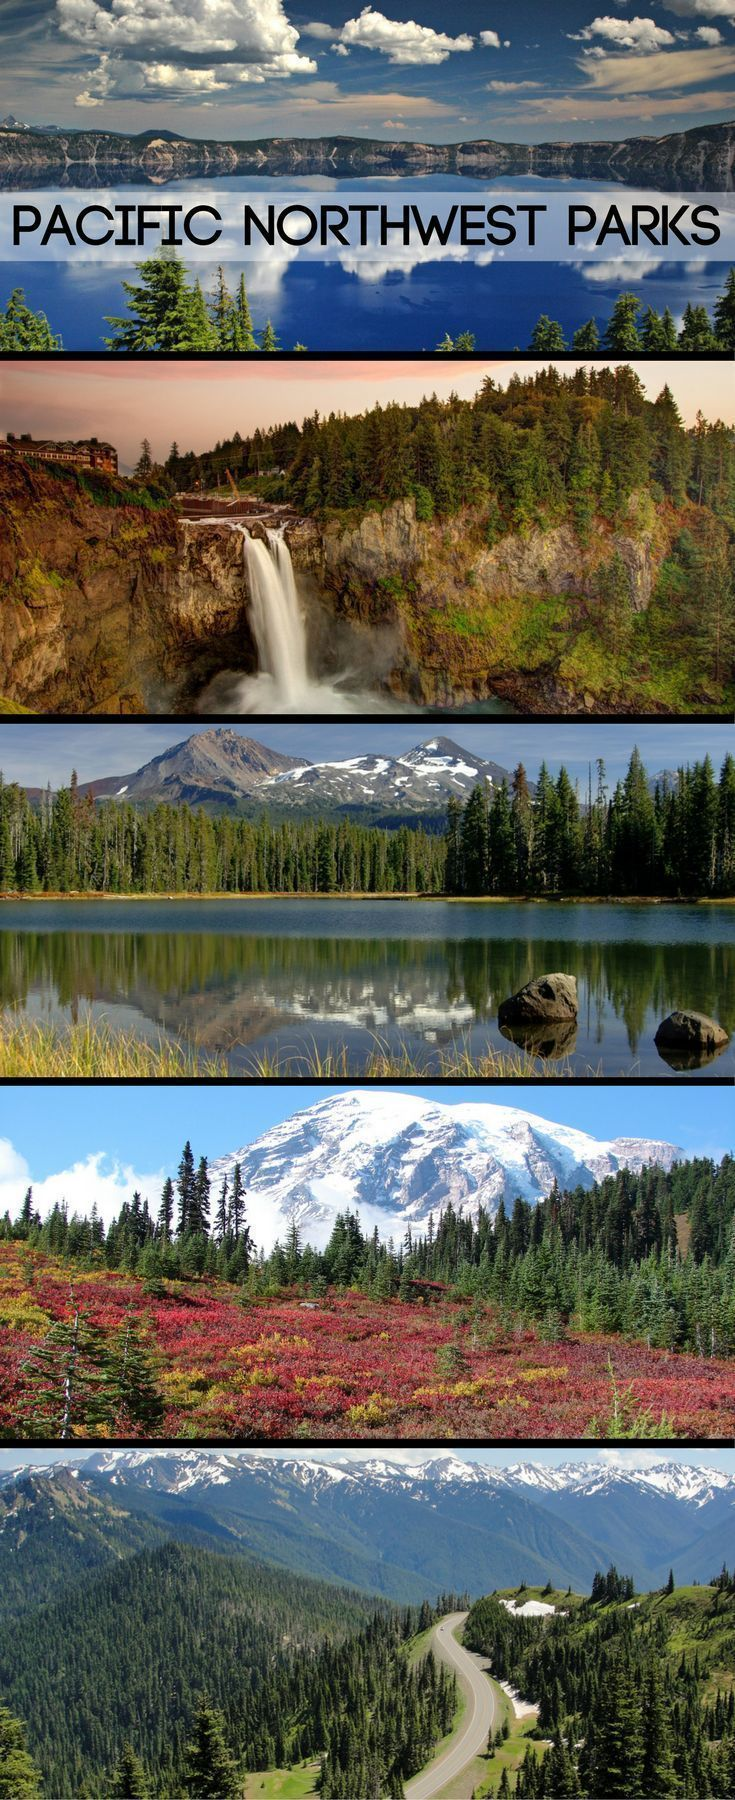 Mountains, rainforests, beaches, and more in the Pacific Northwest!